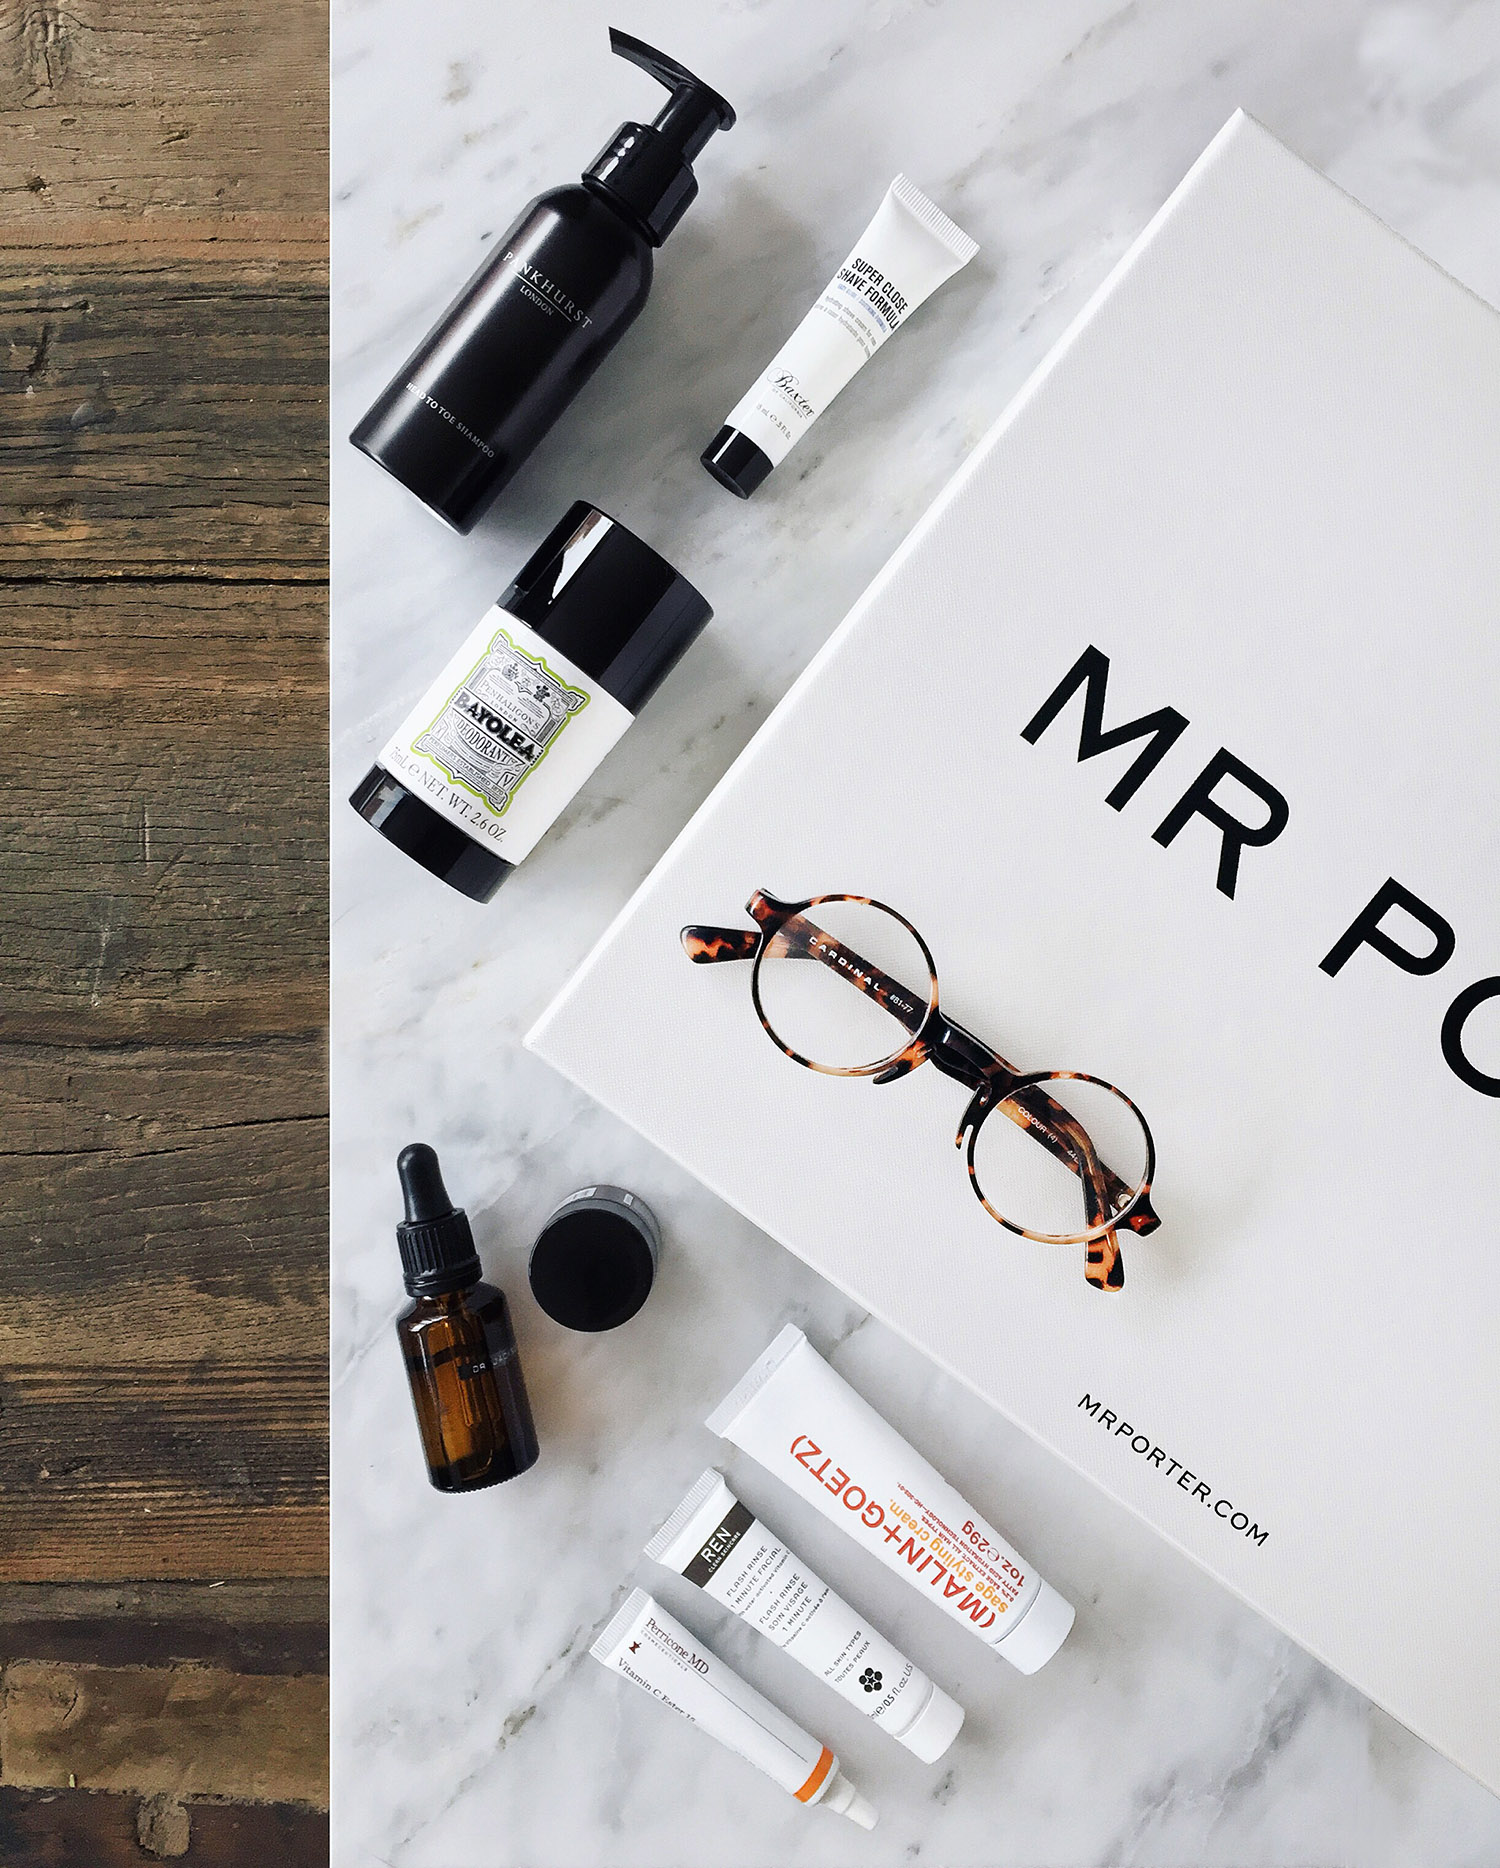 Le Meilleur Mr Porter's Grooming Kit – Mr Essentialist Ce Mois Ci